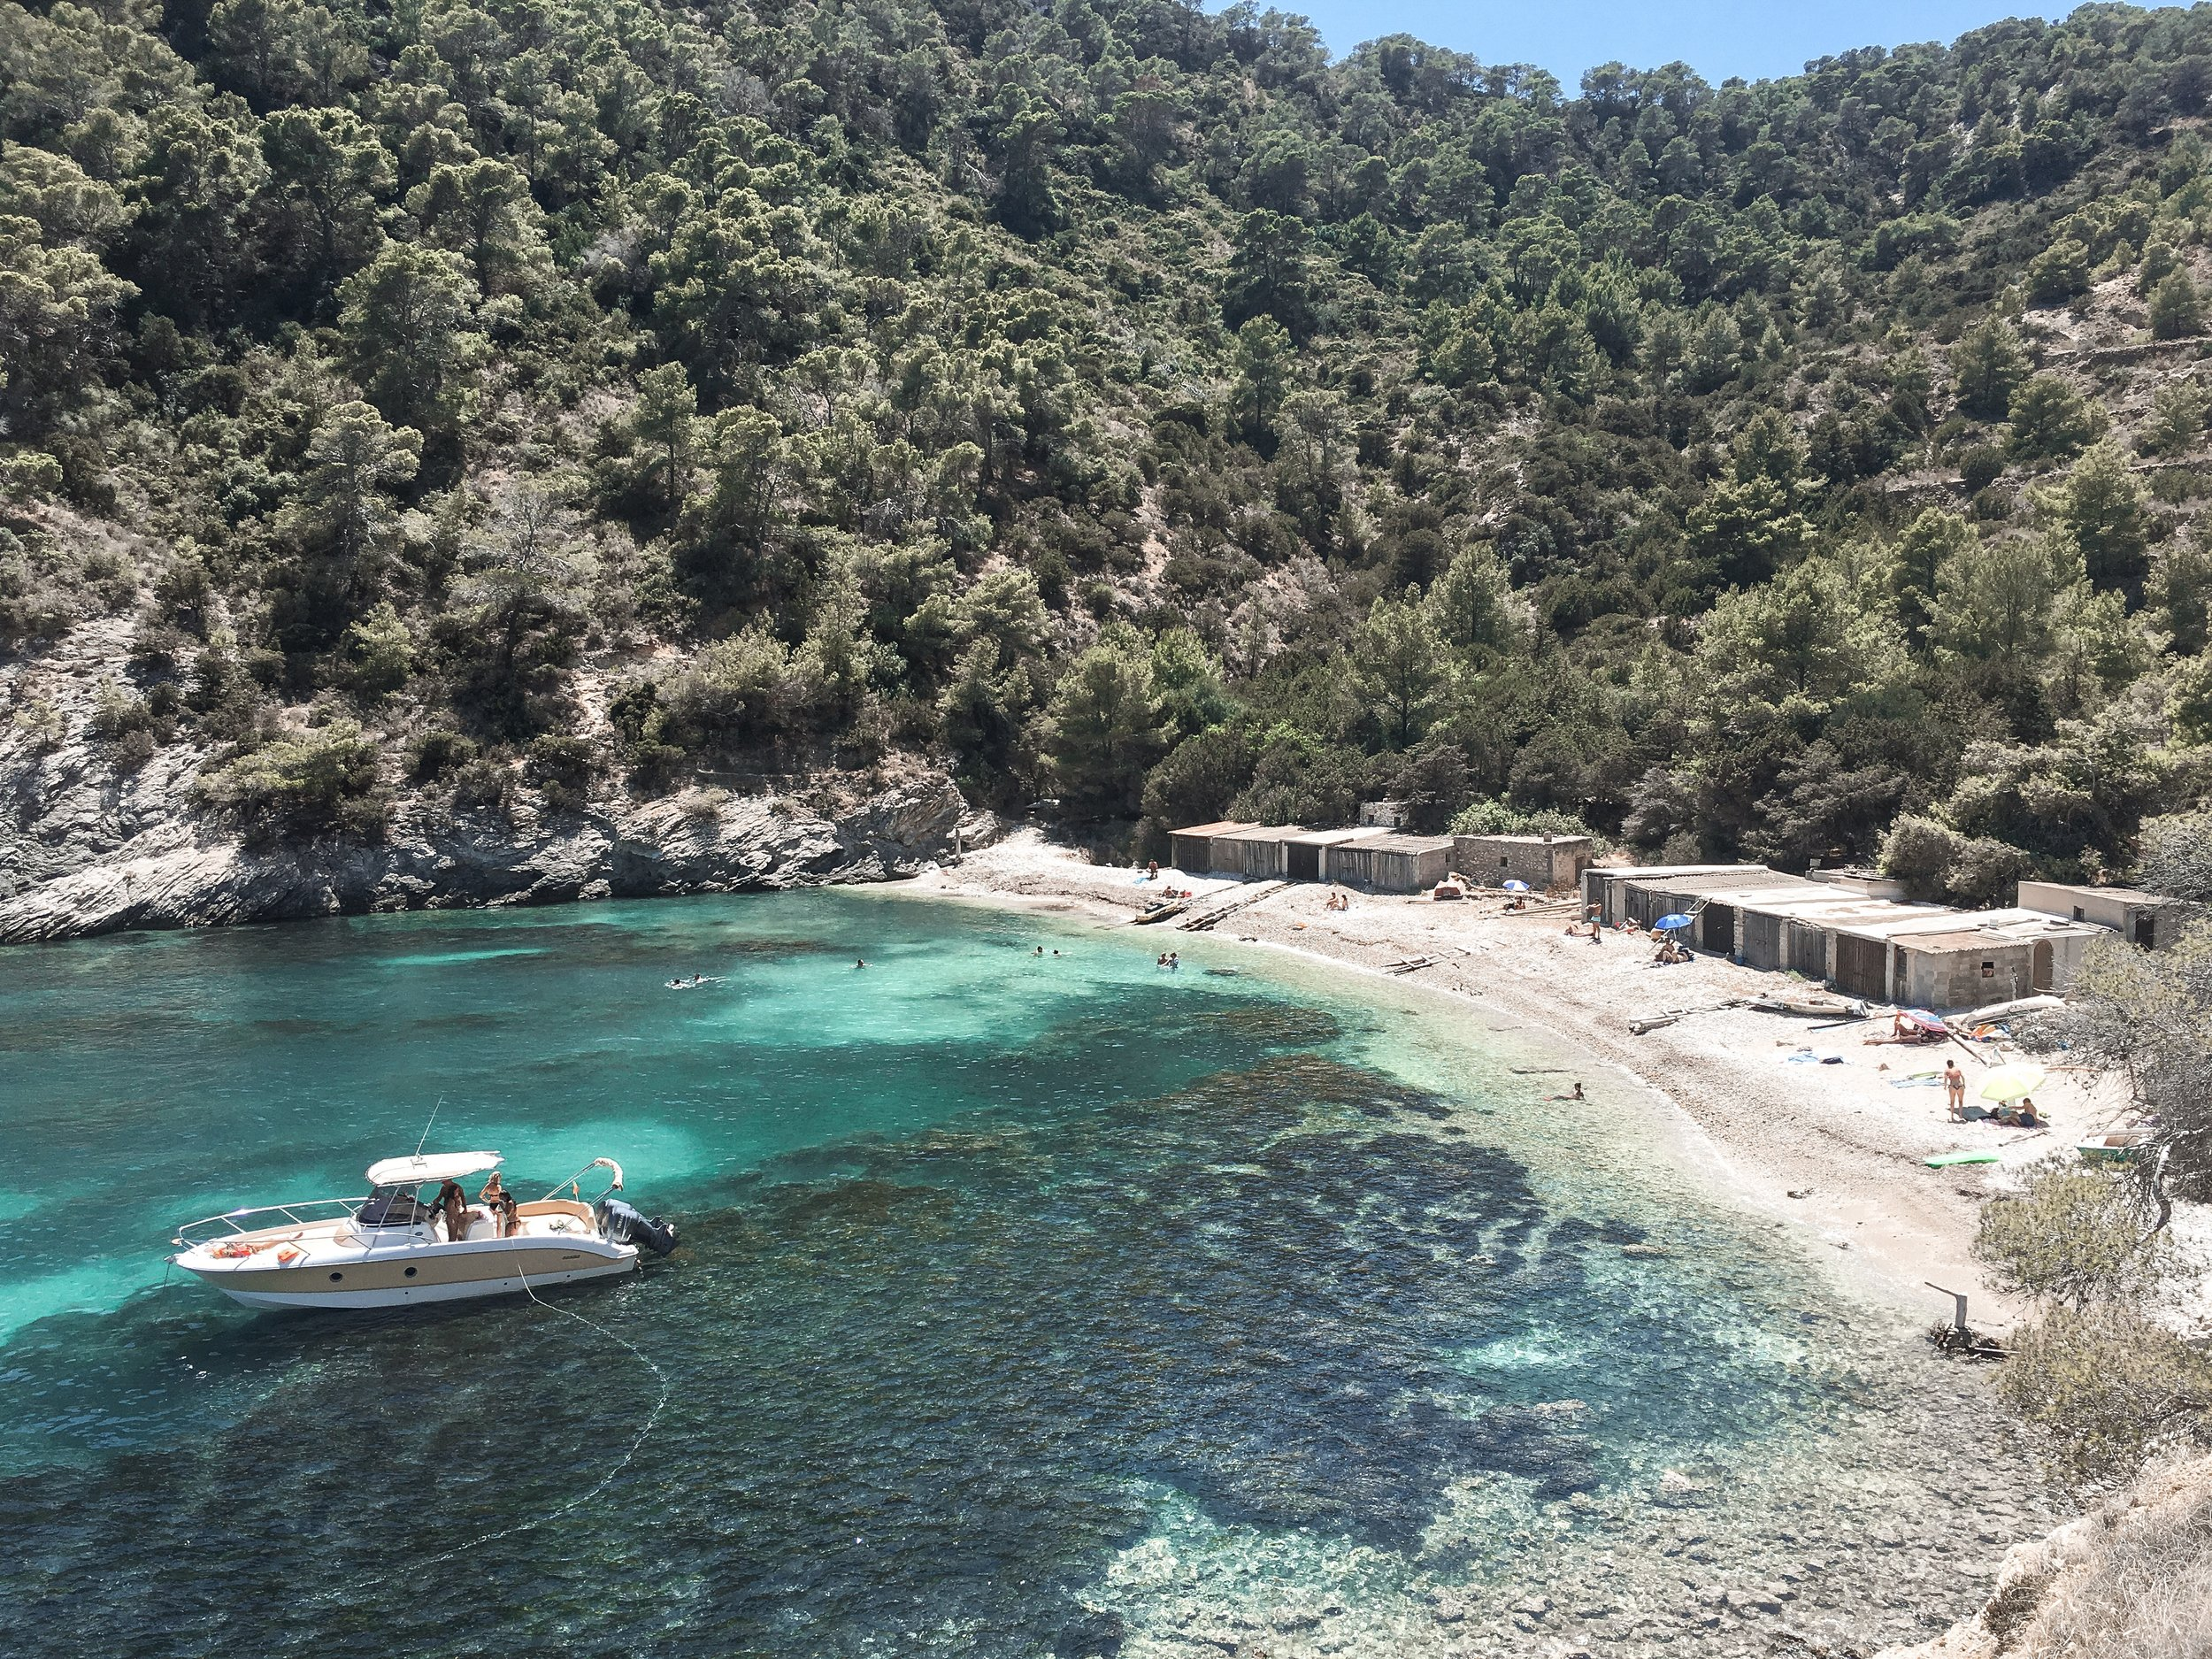 Ibiza: is it only a bling-bling party island? — Lulu Escapes